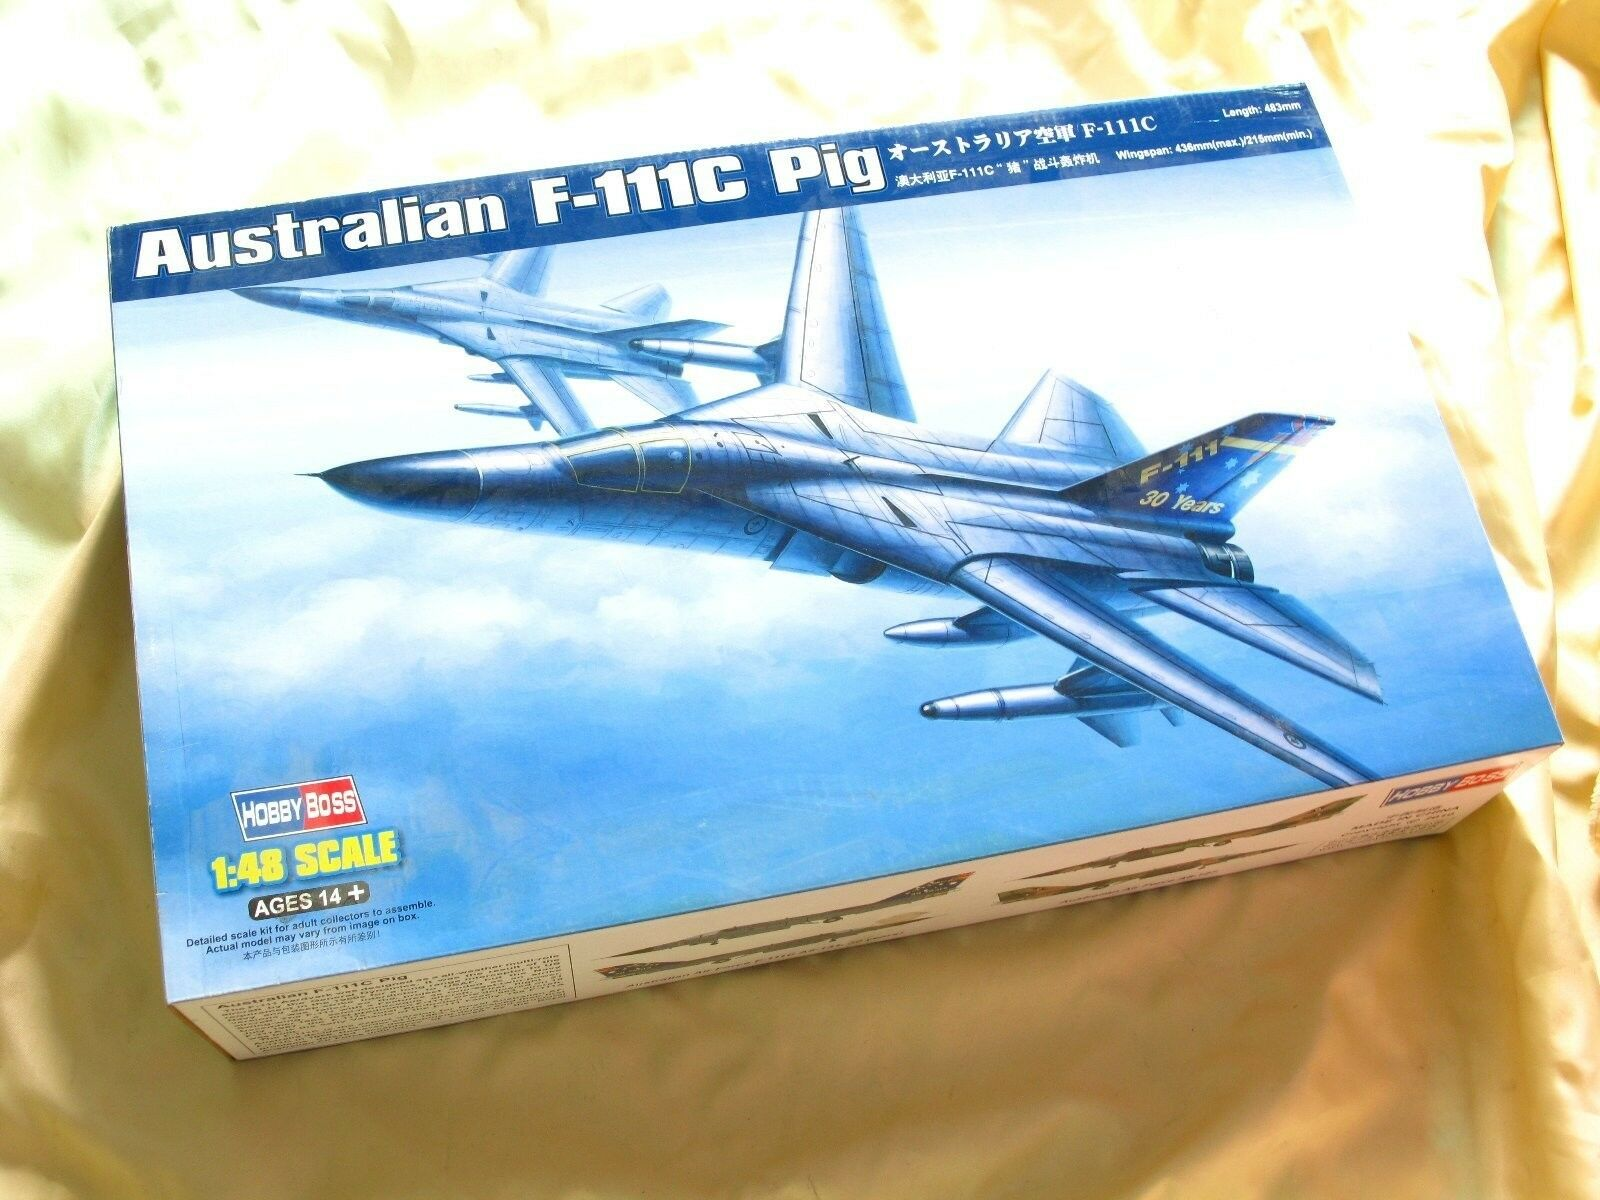 Trumpeter 80349 Aircraft Model Jet 1 48 Scale Airplane F-111C Pig Bomber Fighter